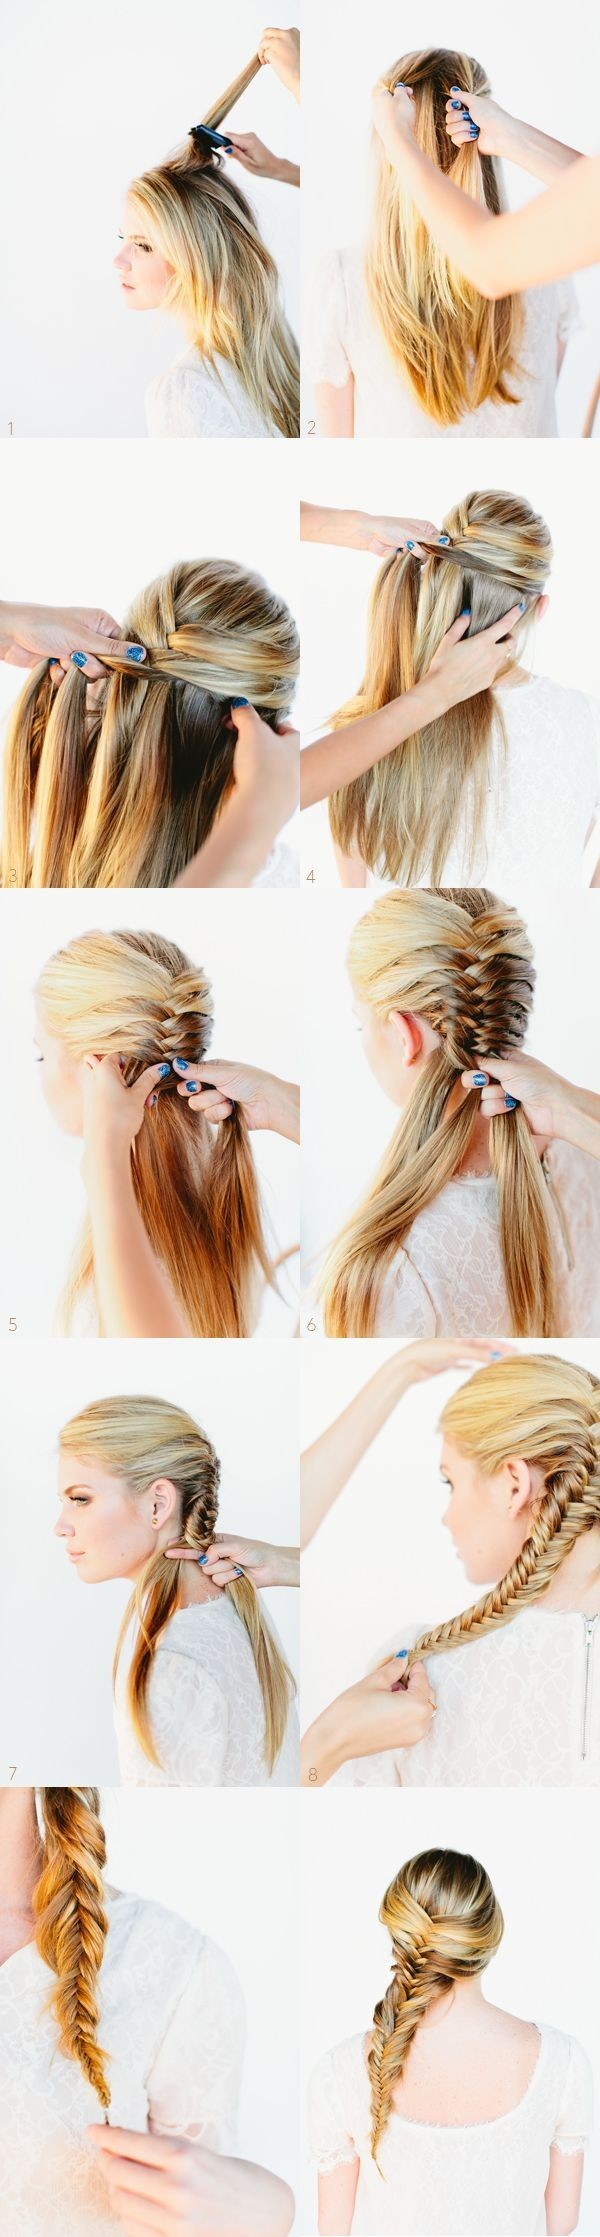 Braided Hairstyles Ideas: Messy Side Braids Tutorial